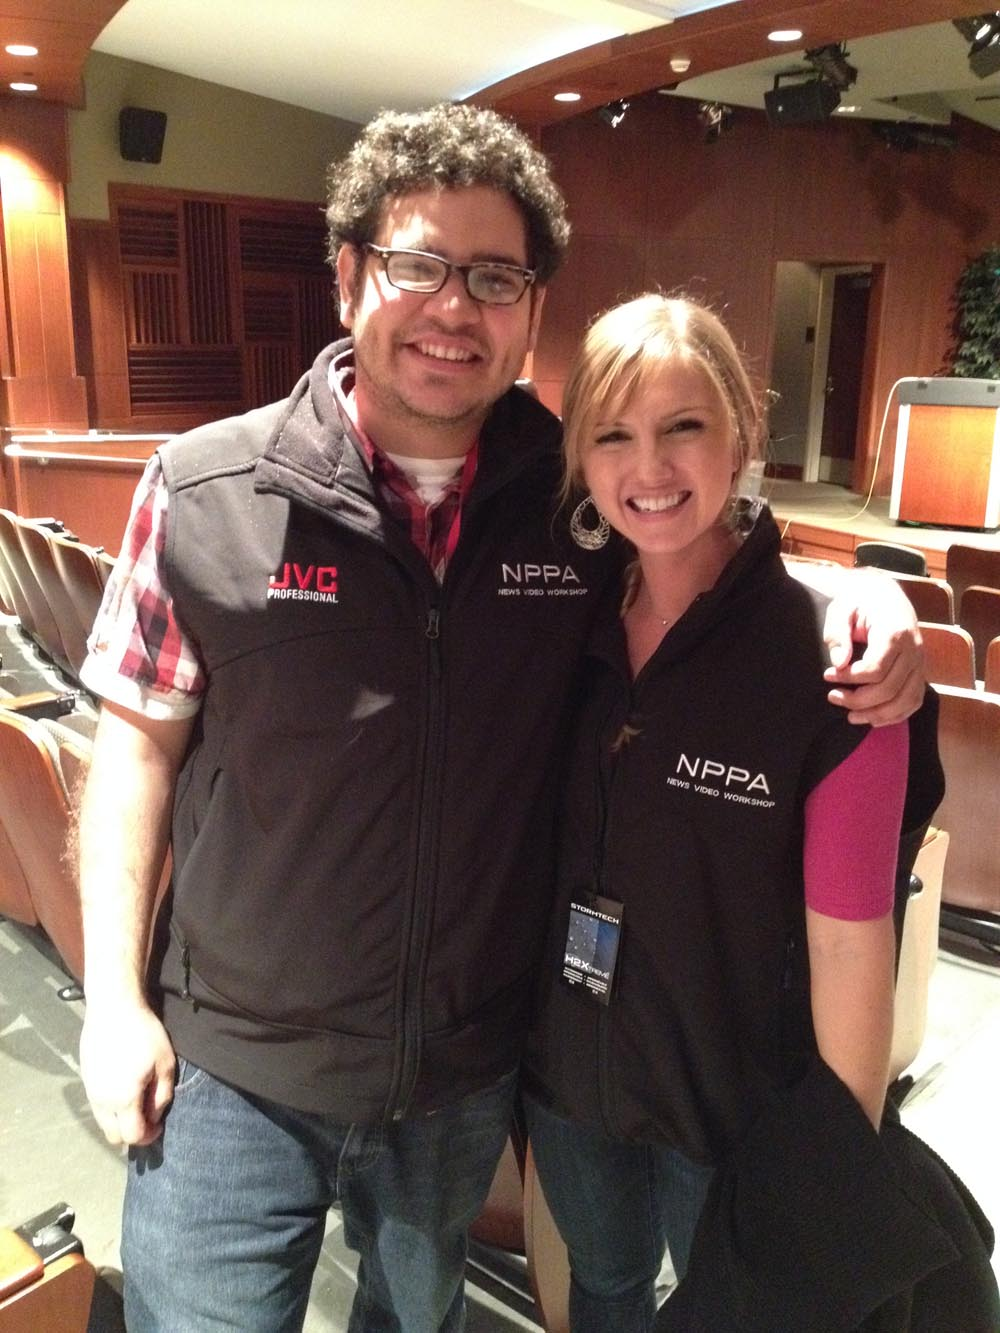 Katie Schoolov and Evelio Contreras at the NPPA News Video Workshop in Norman, OK.